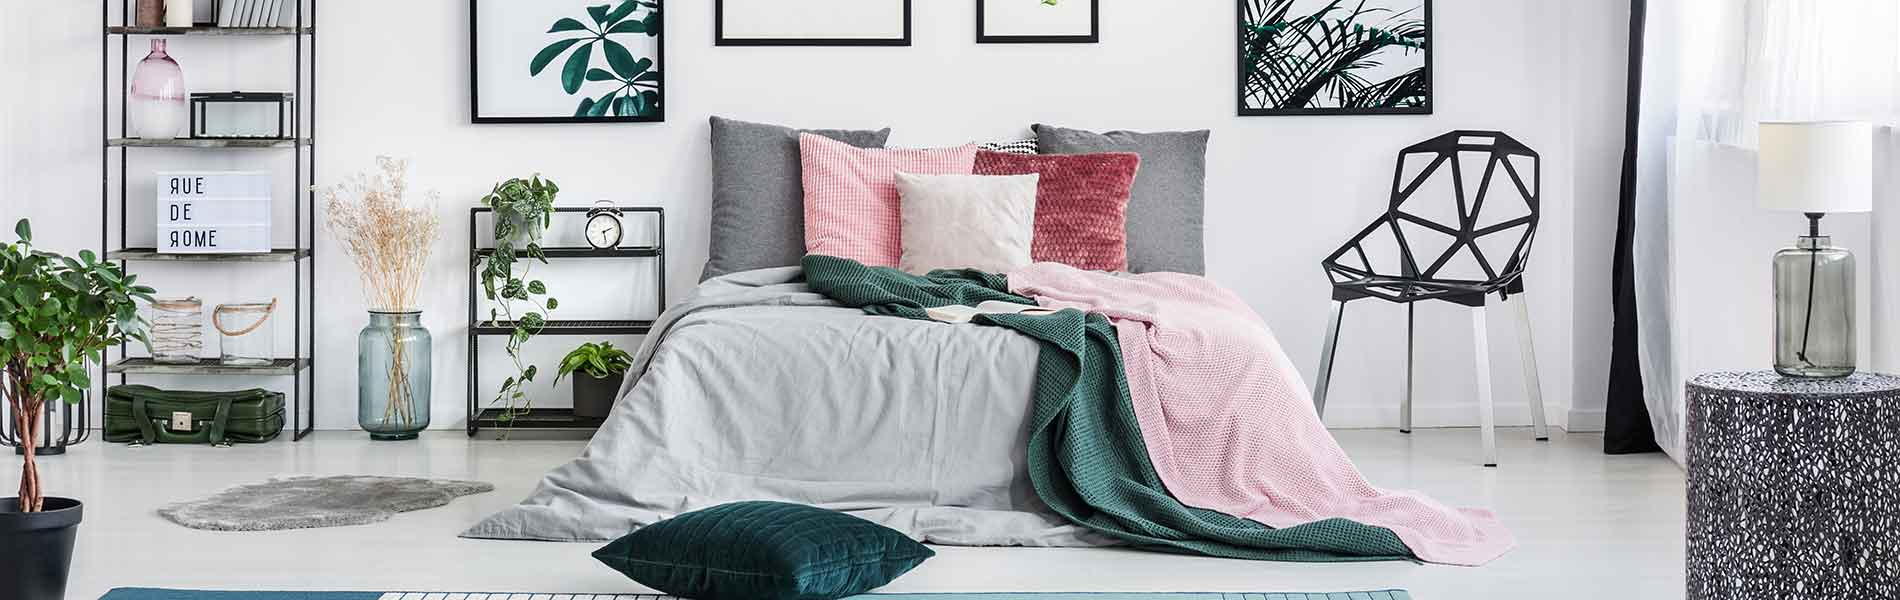 Simple Ways To Give Your Bedroom a Quick Makeover